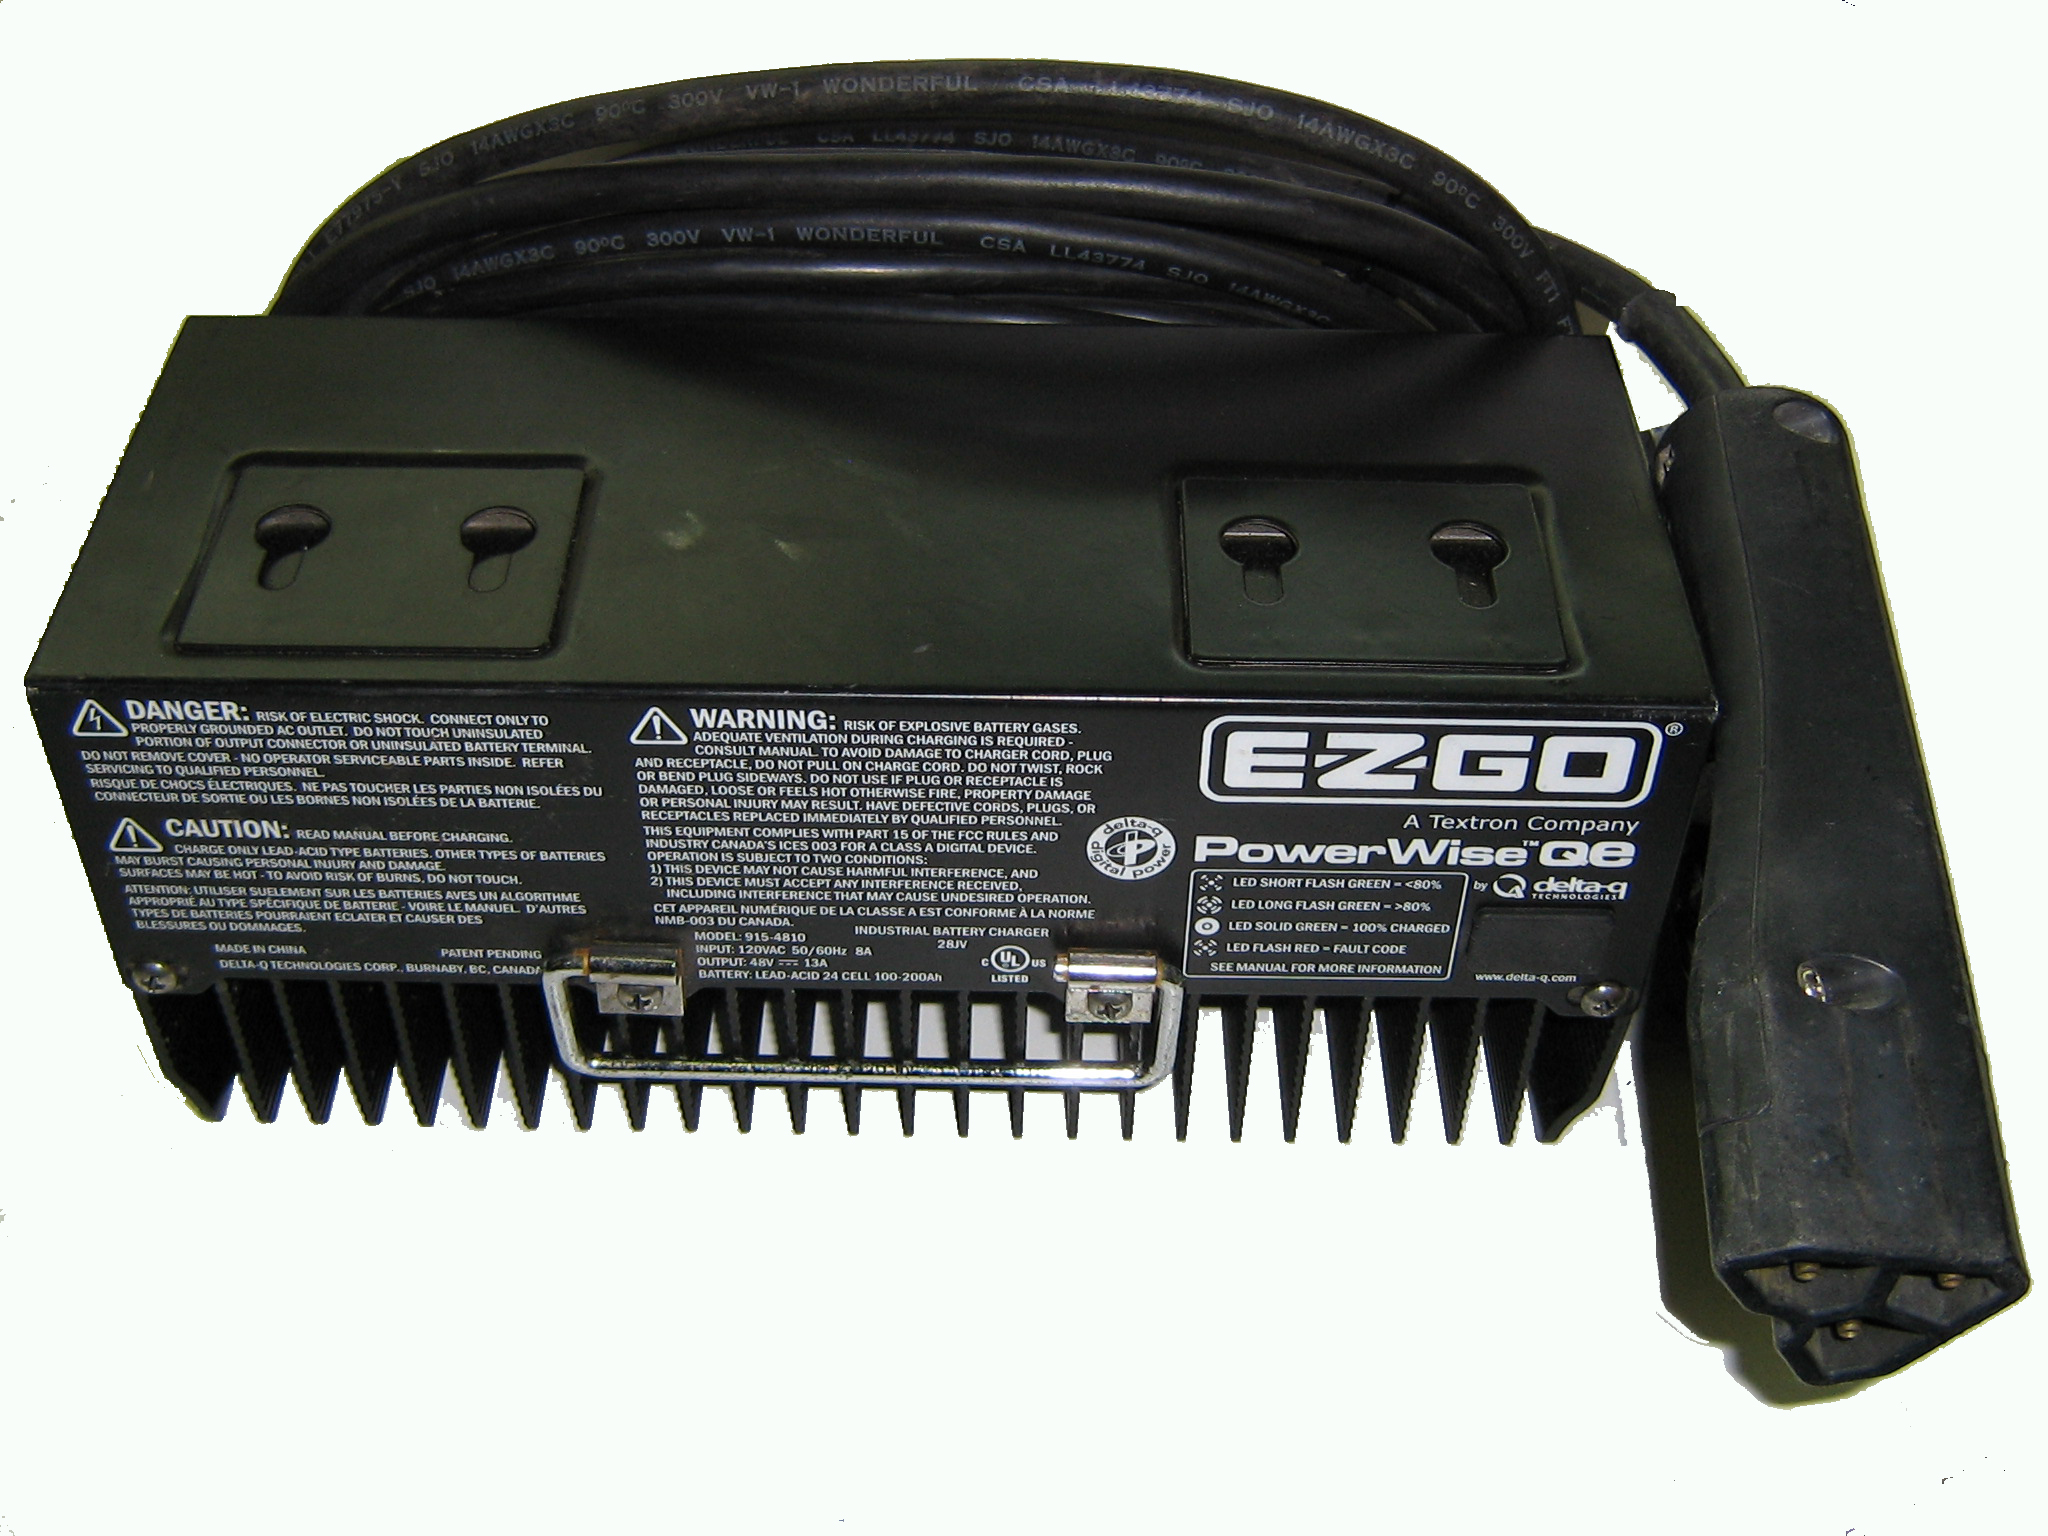 ez go battery wiring diagram for round 4 pin trailer plug professionally remanufactured parts with extended warranty